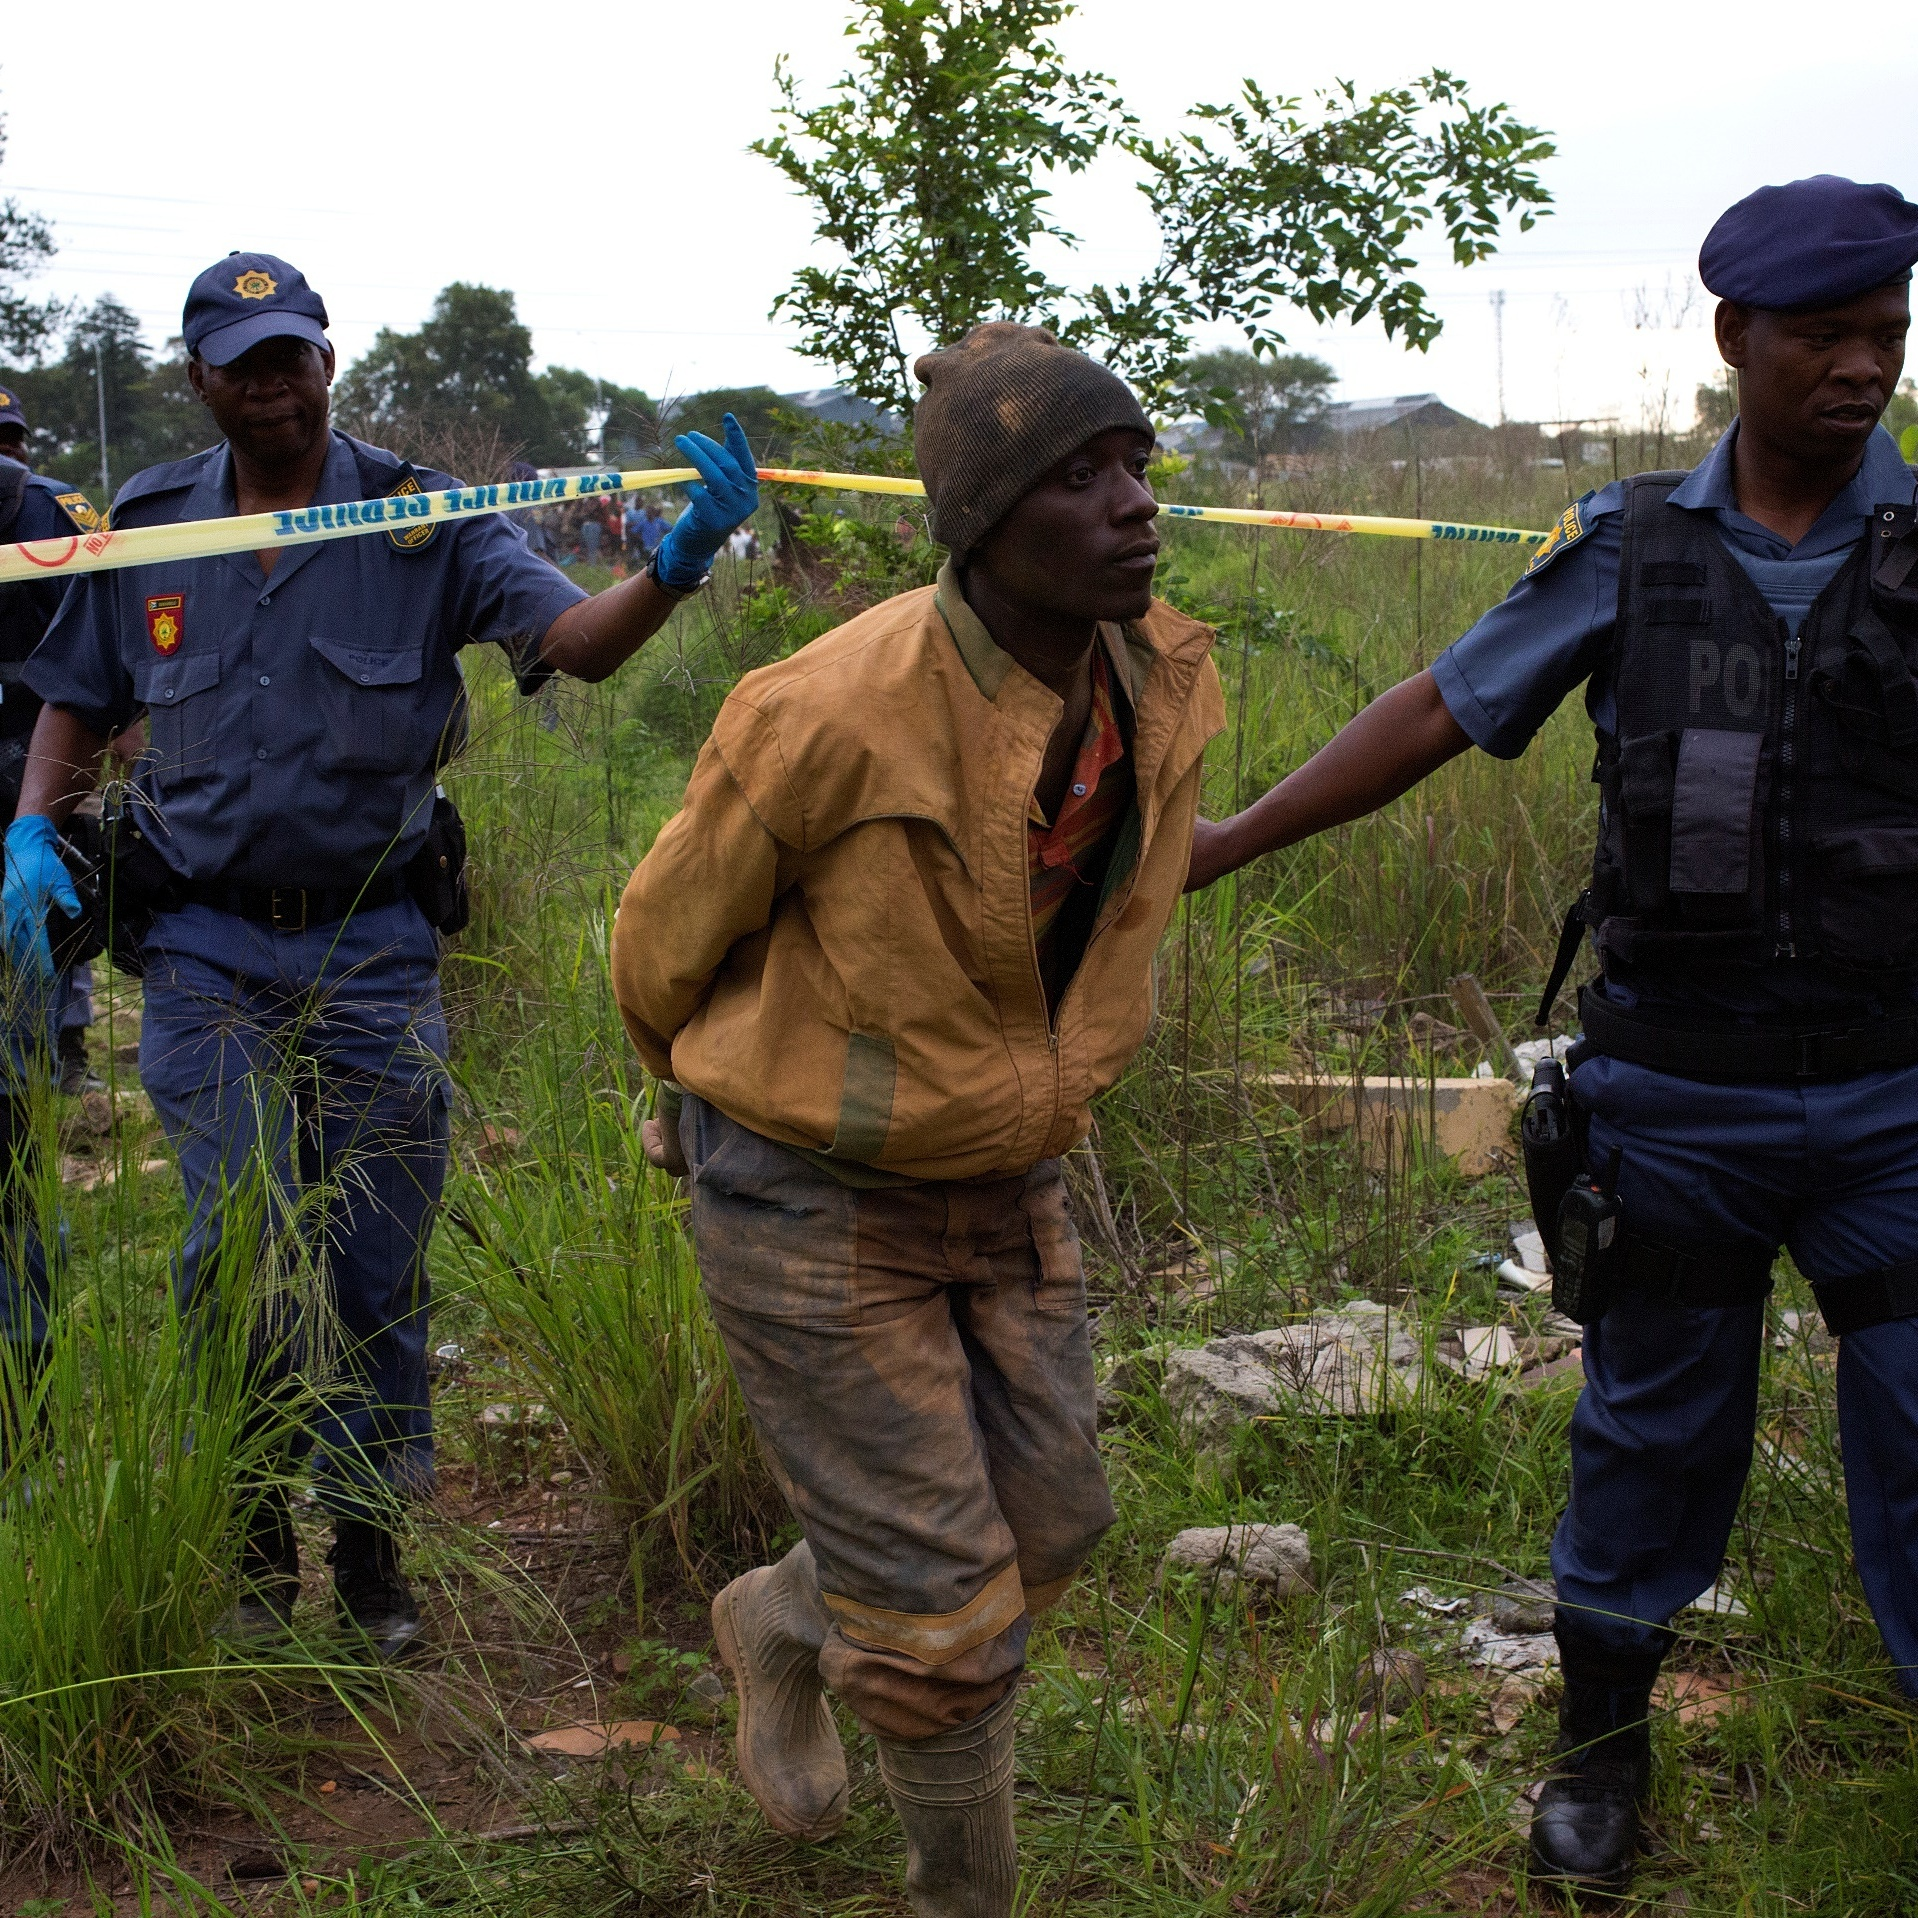 An illegal miner is led away after being arrested near Johannesburg last month. Unauthorized mining is common in the region.